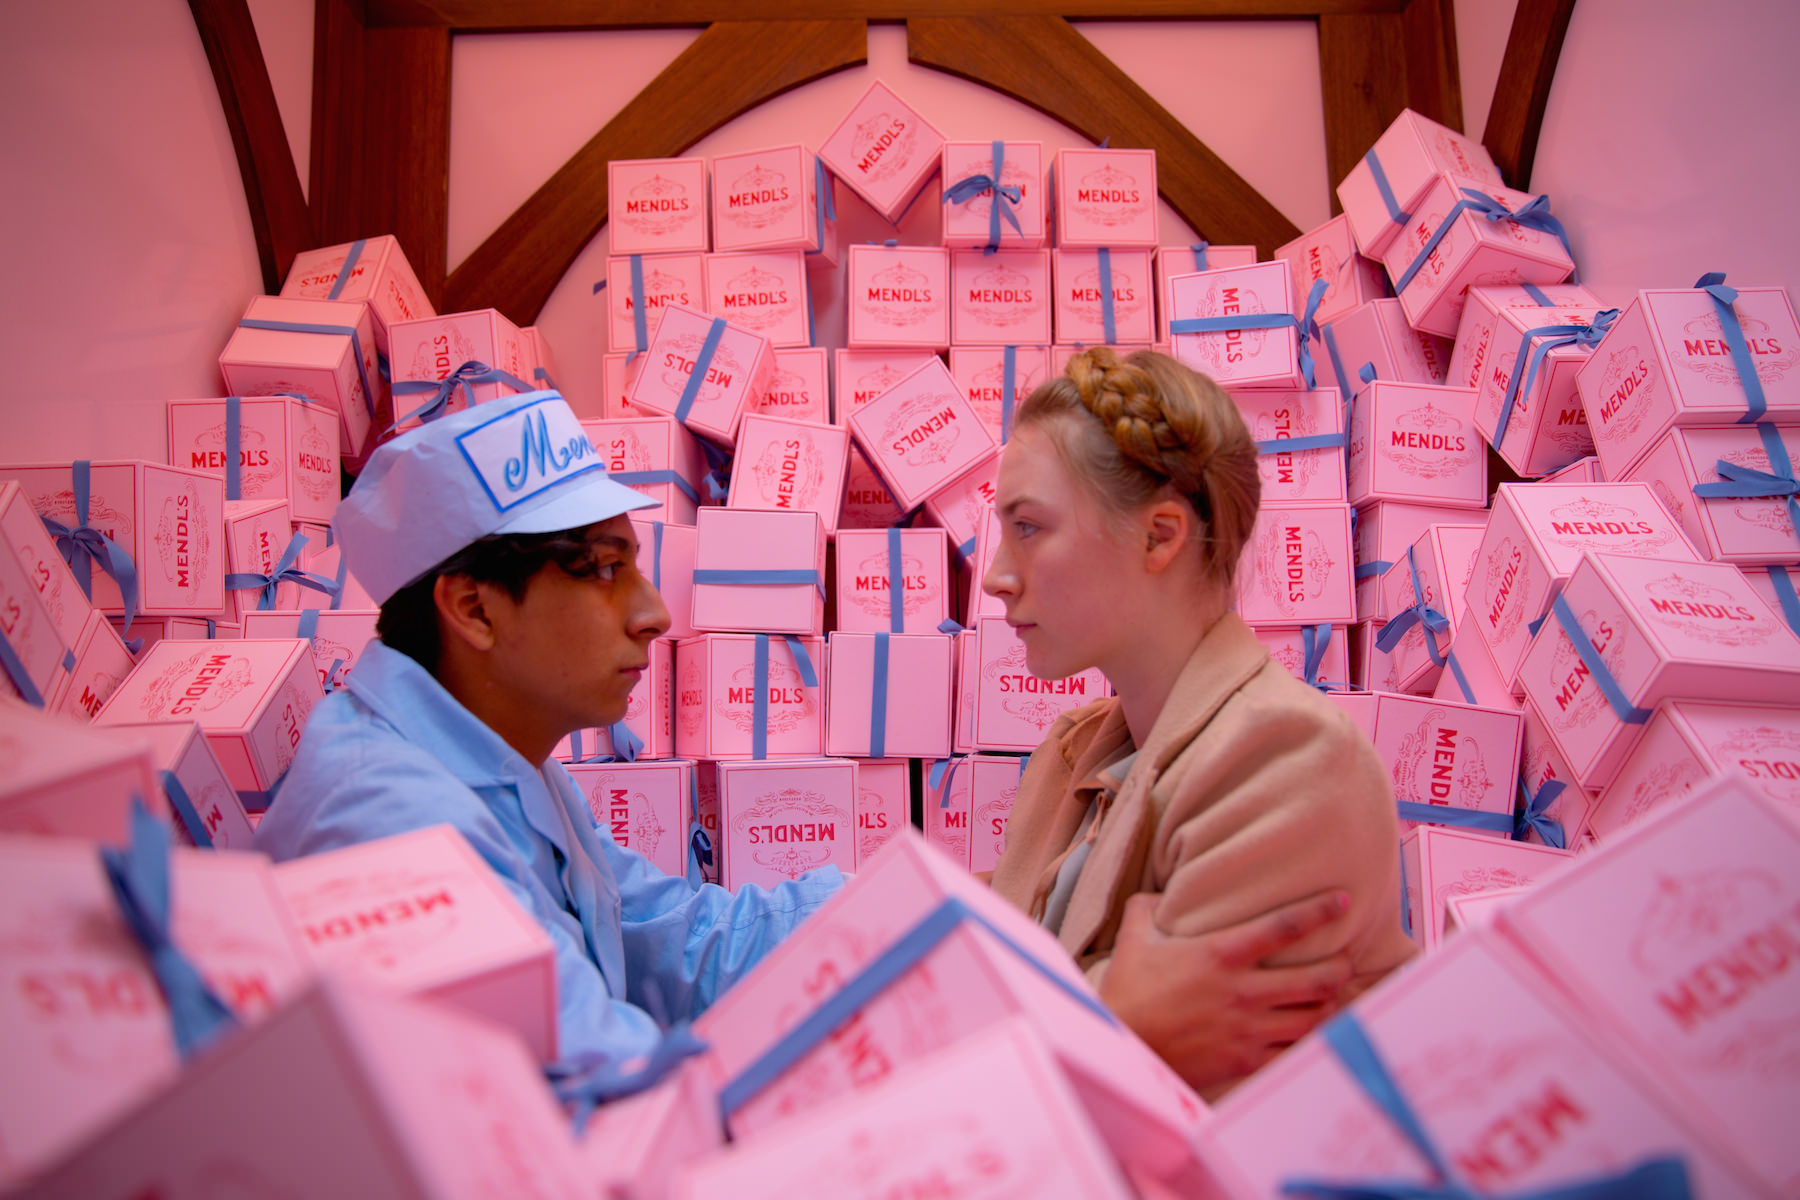 The grand budapest hotel anderson tony revolori